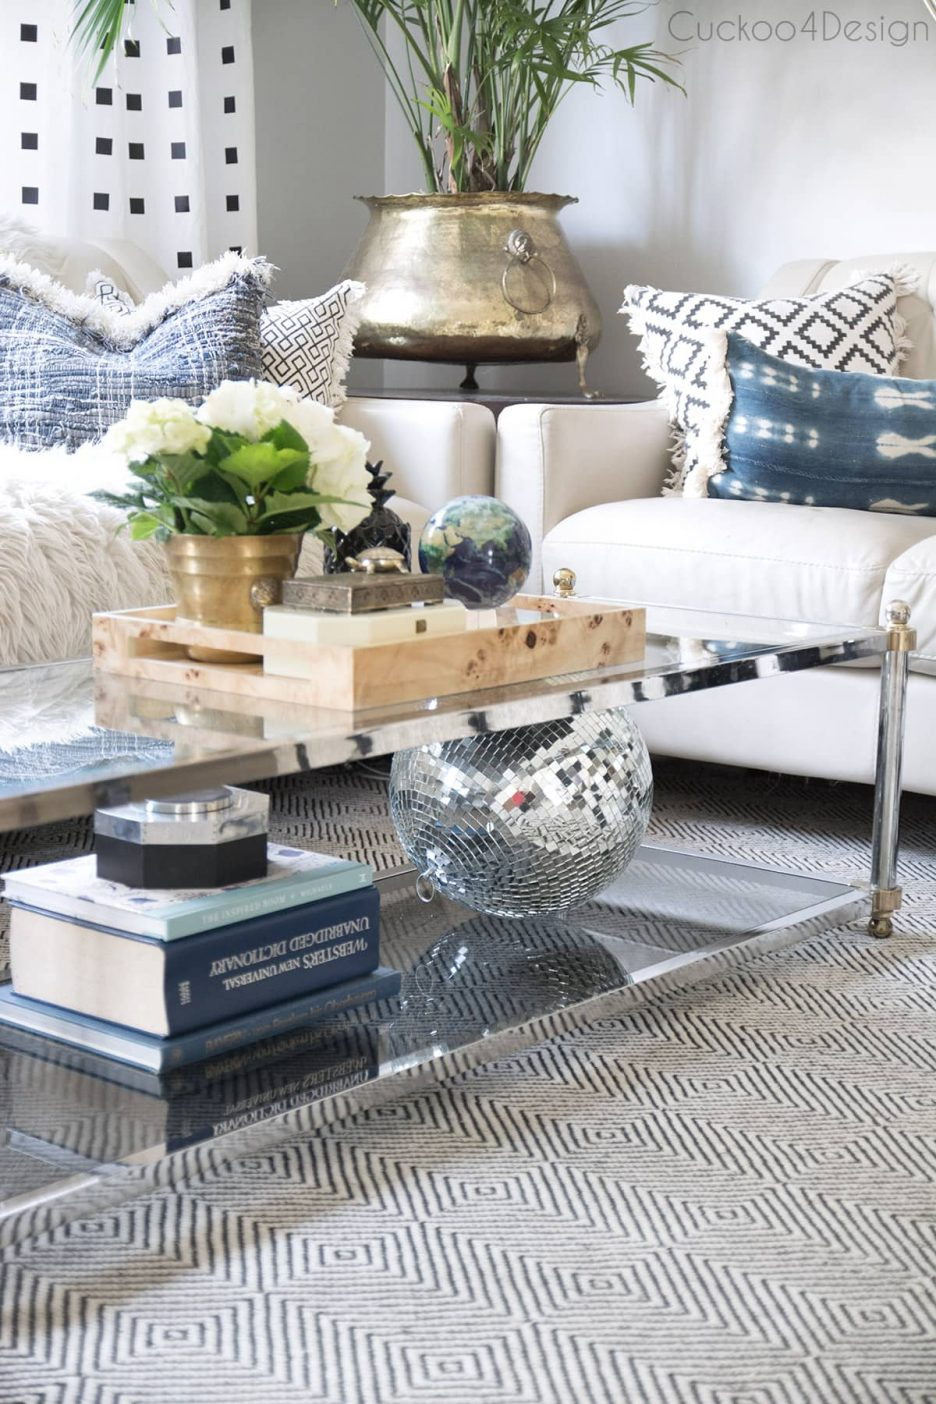 ott coffee table slate tile unique decor plexiglass decoration ideas accents accent chair and set antique victorian marble top end tables outside furniture covers long narrow